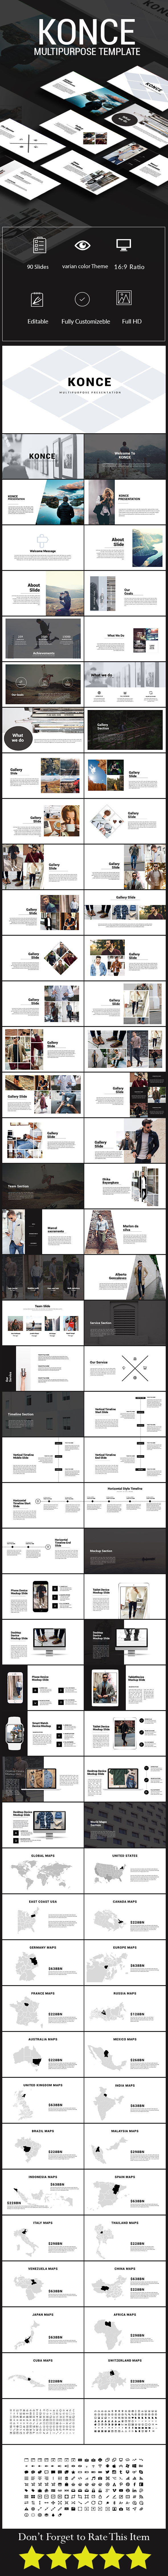 Konce Powerpoint Template - PowerPoint Templates Presentation Templates